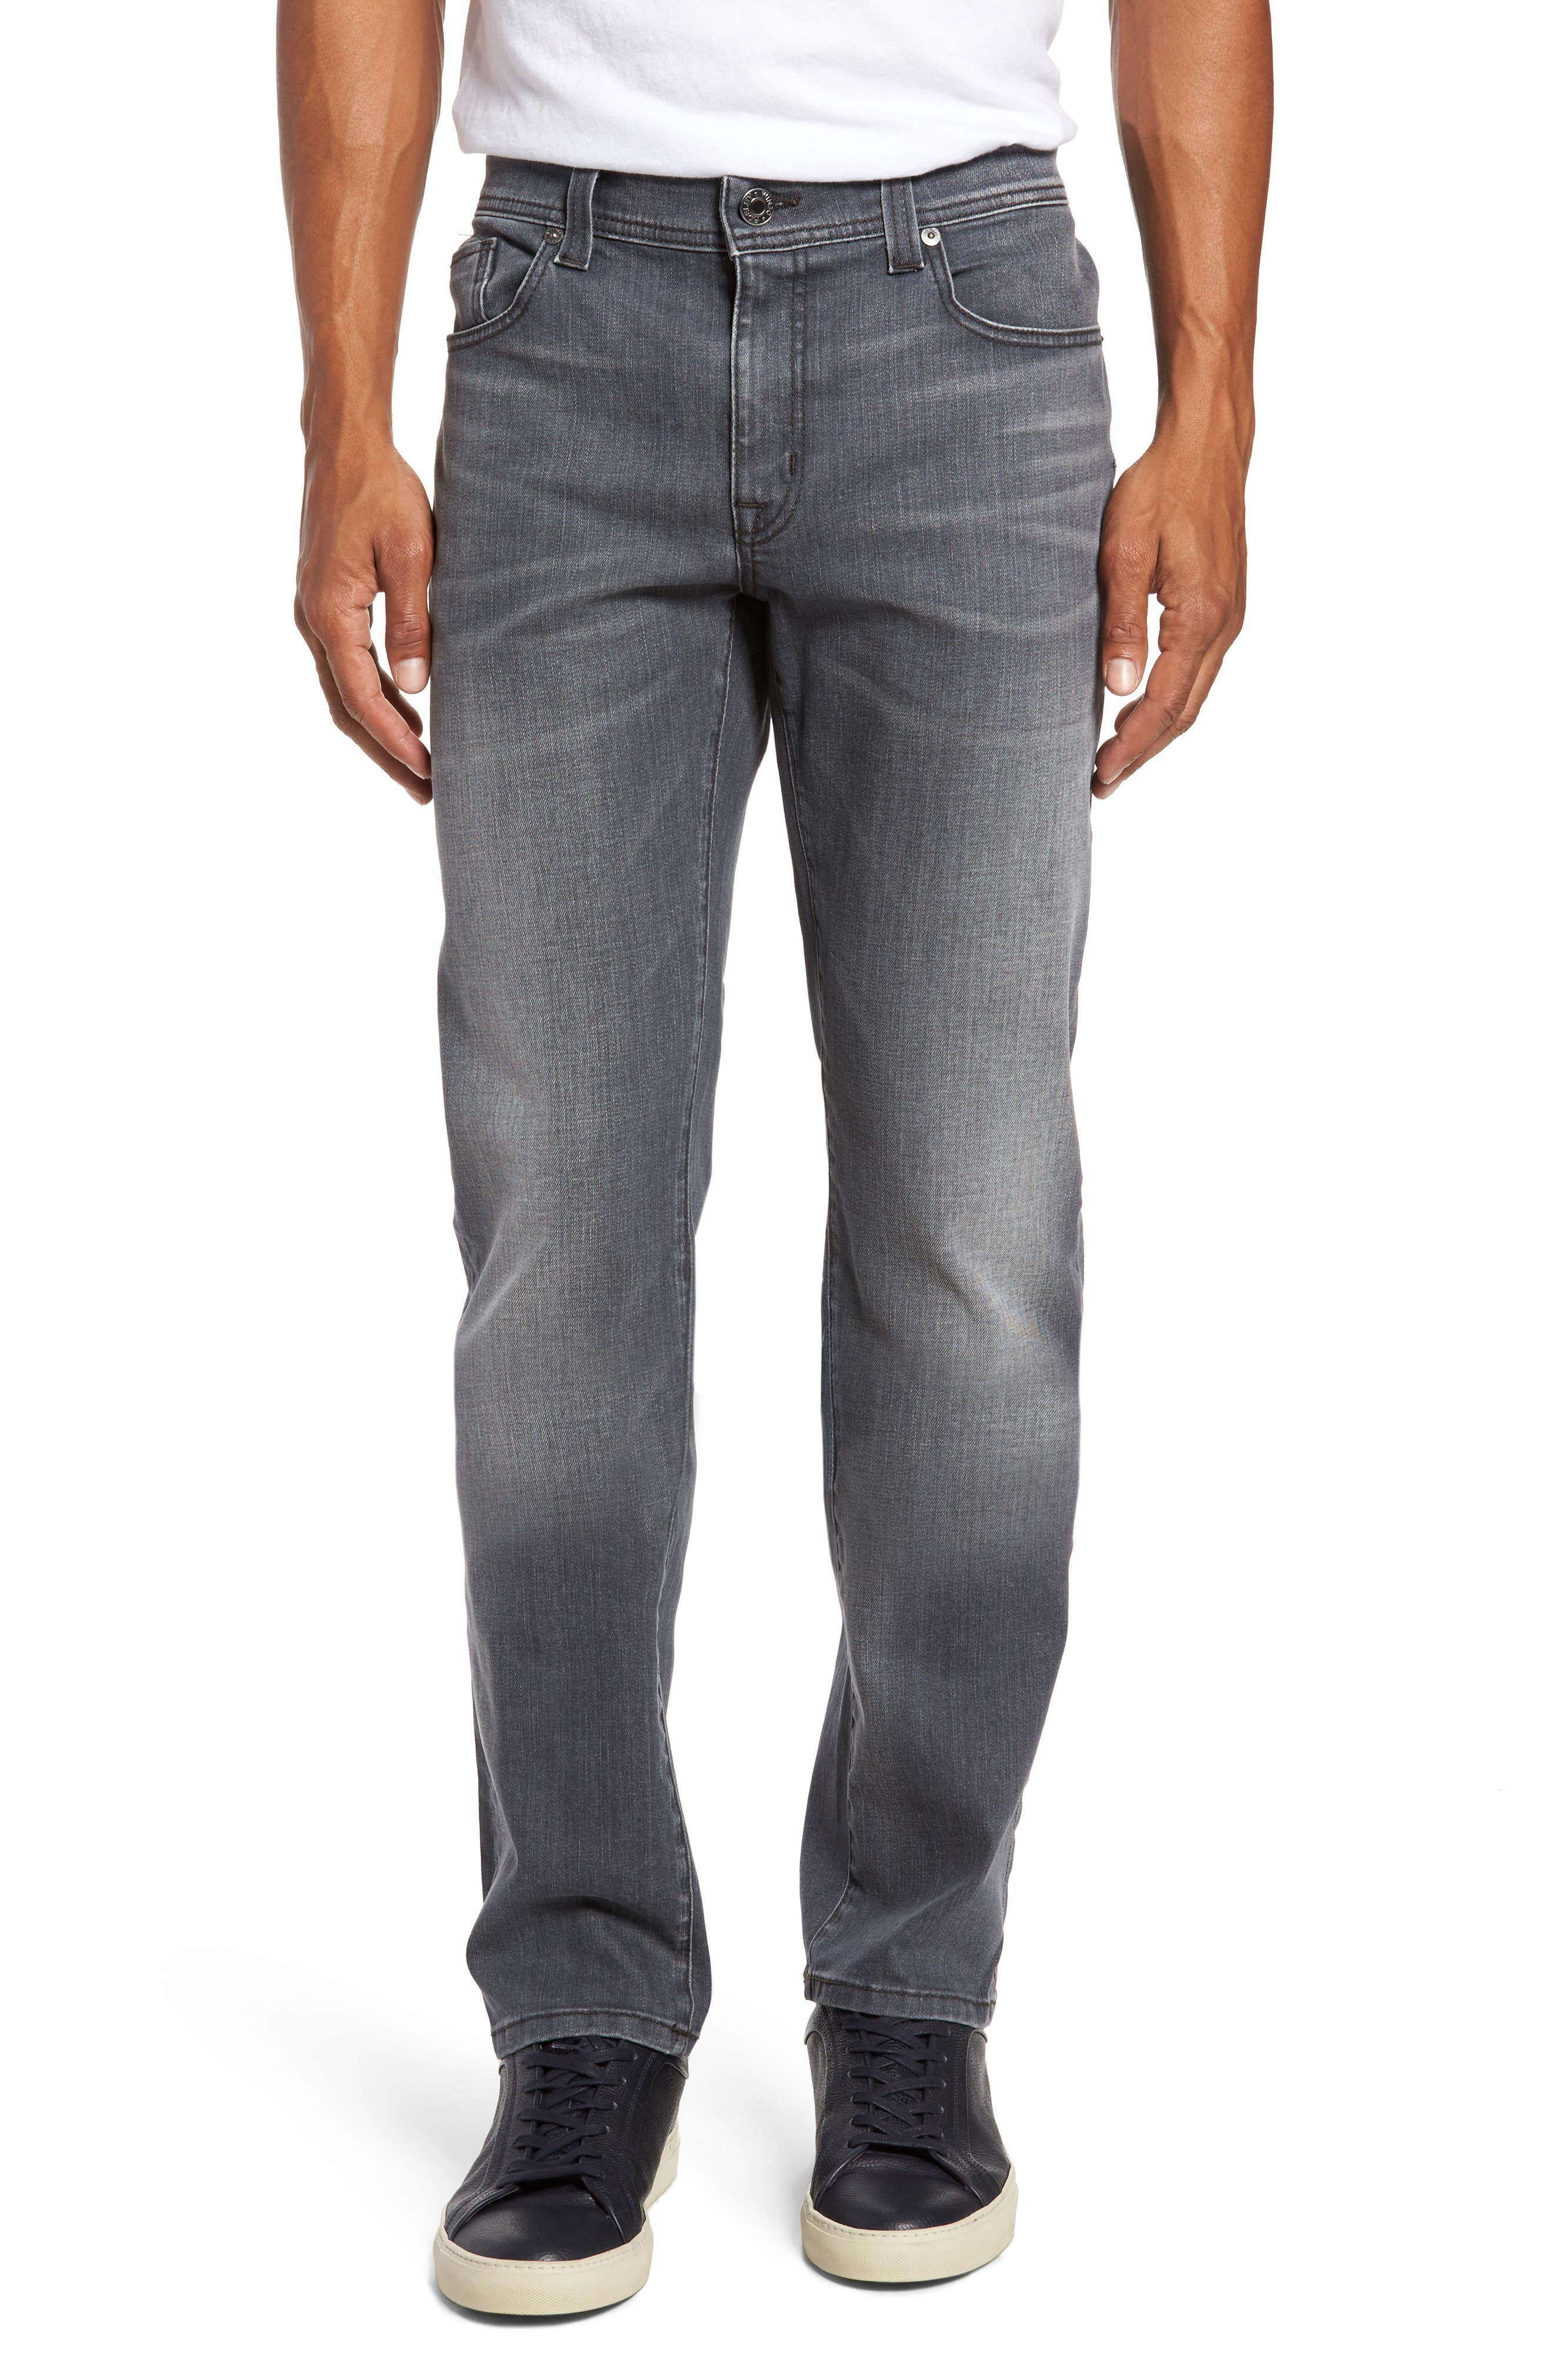 Jimmy Slim Straight Fit Jeans,                         Main,                         color, Steelo Vintage